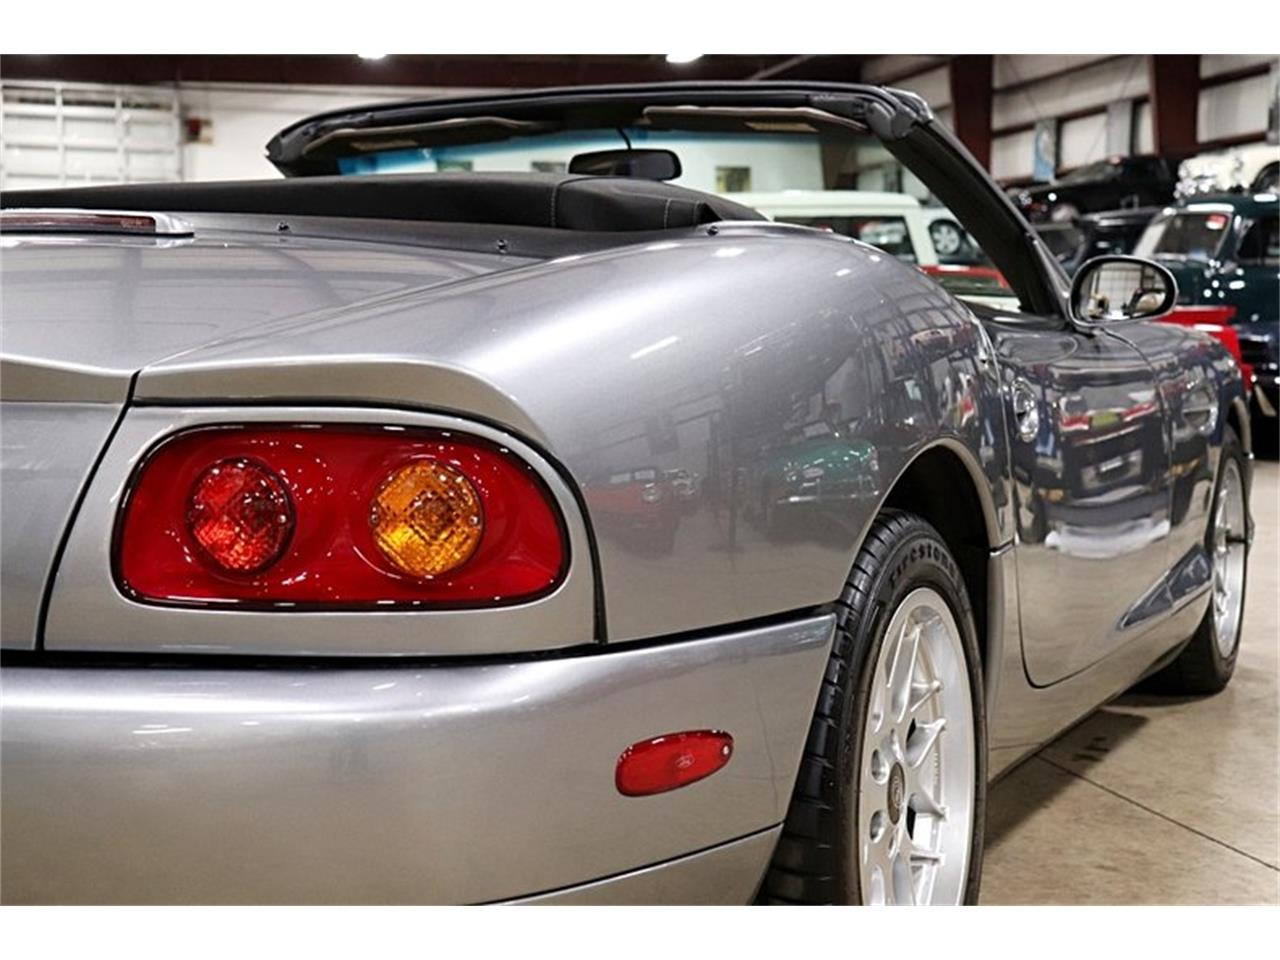 2001 Panoz Esperante for sale in Kentwood, MI – photo 39